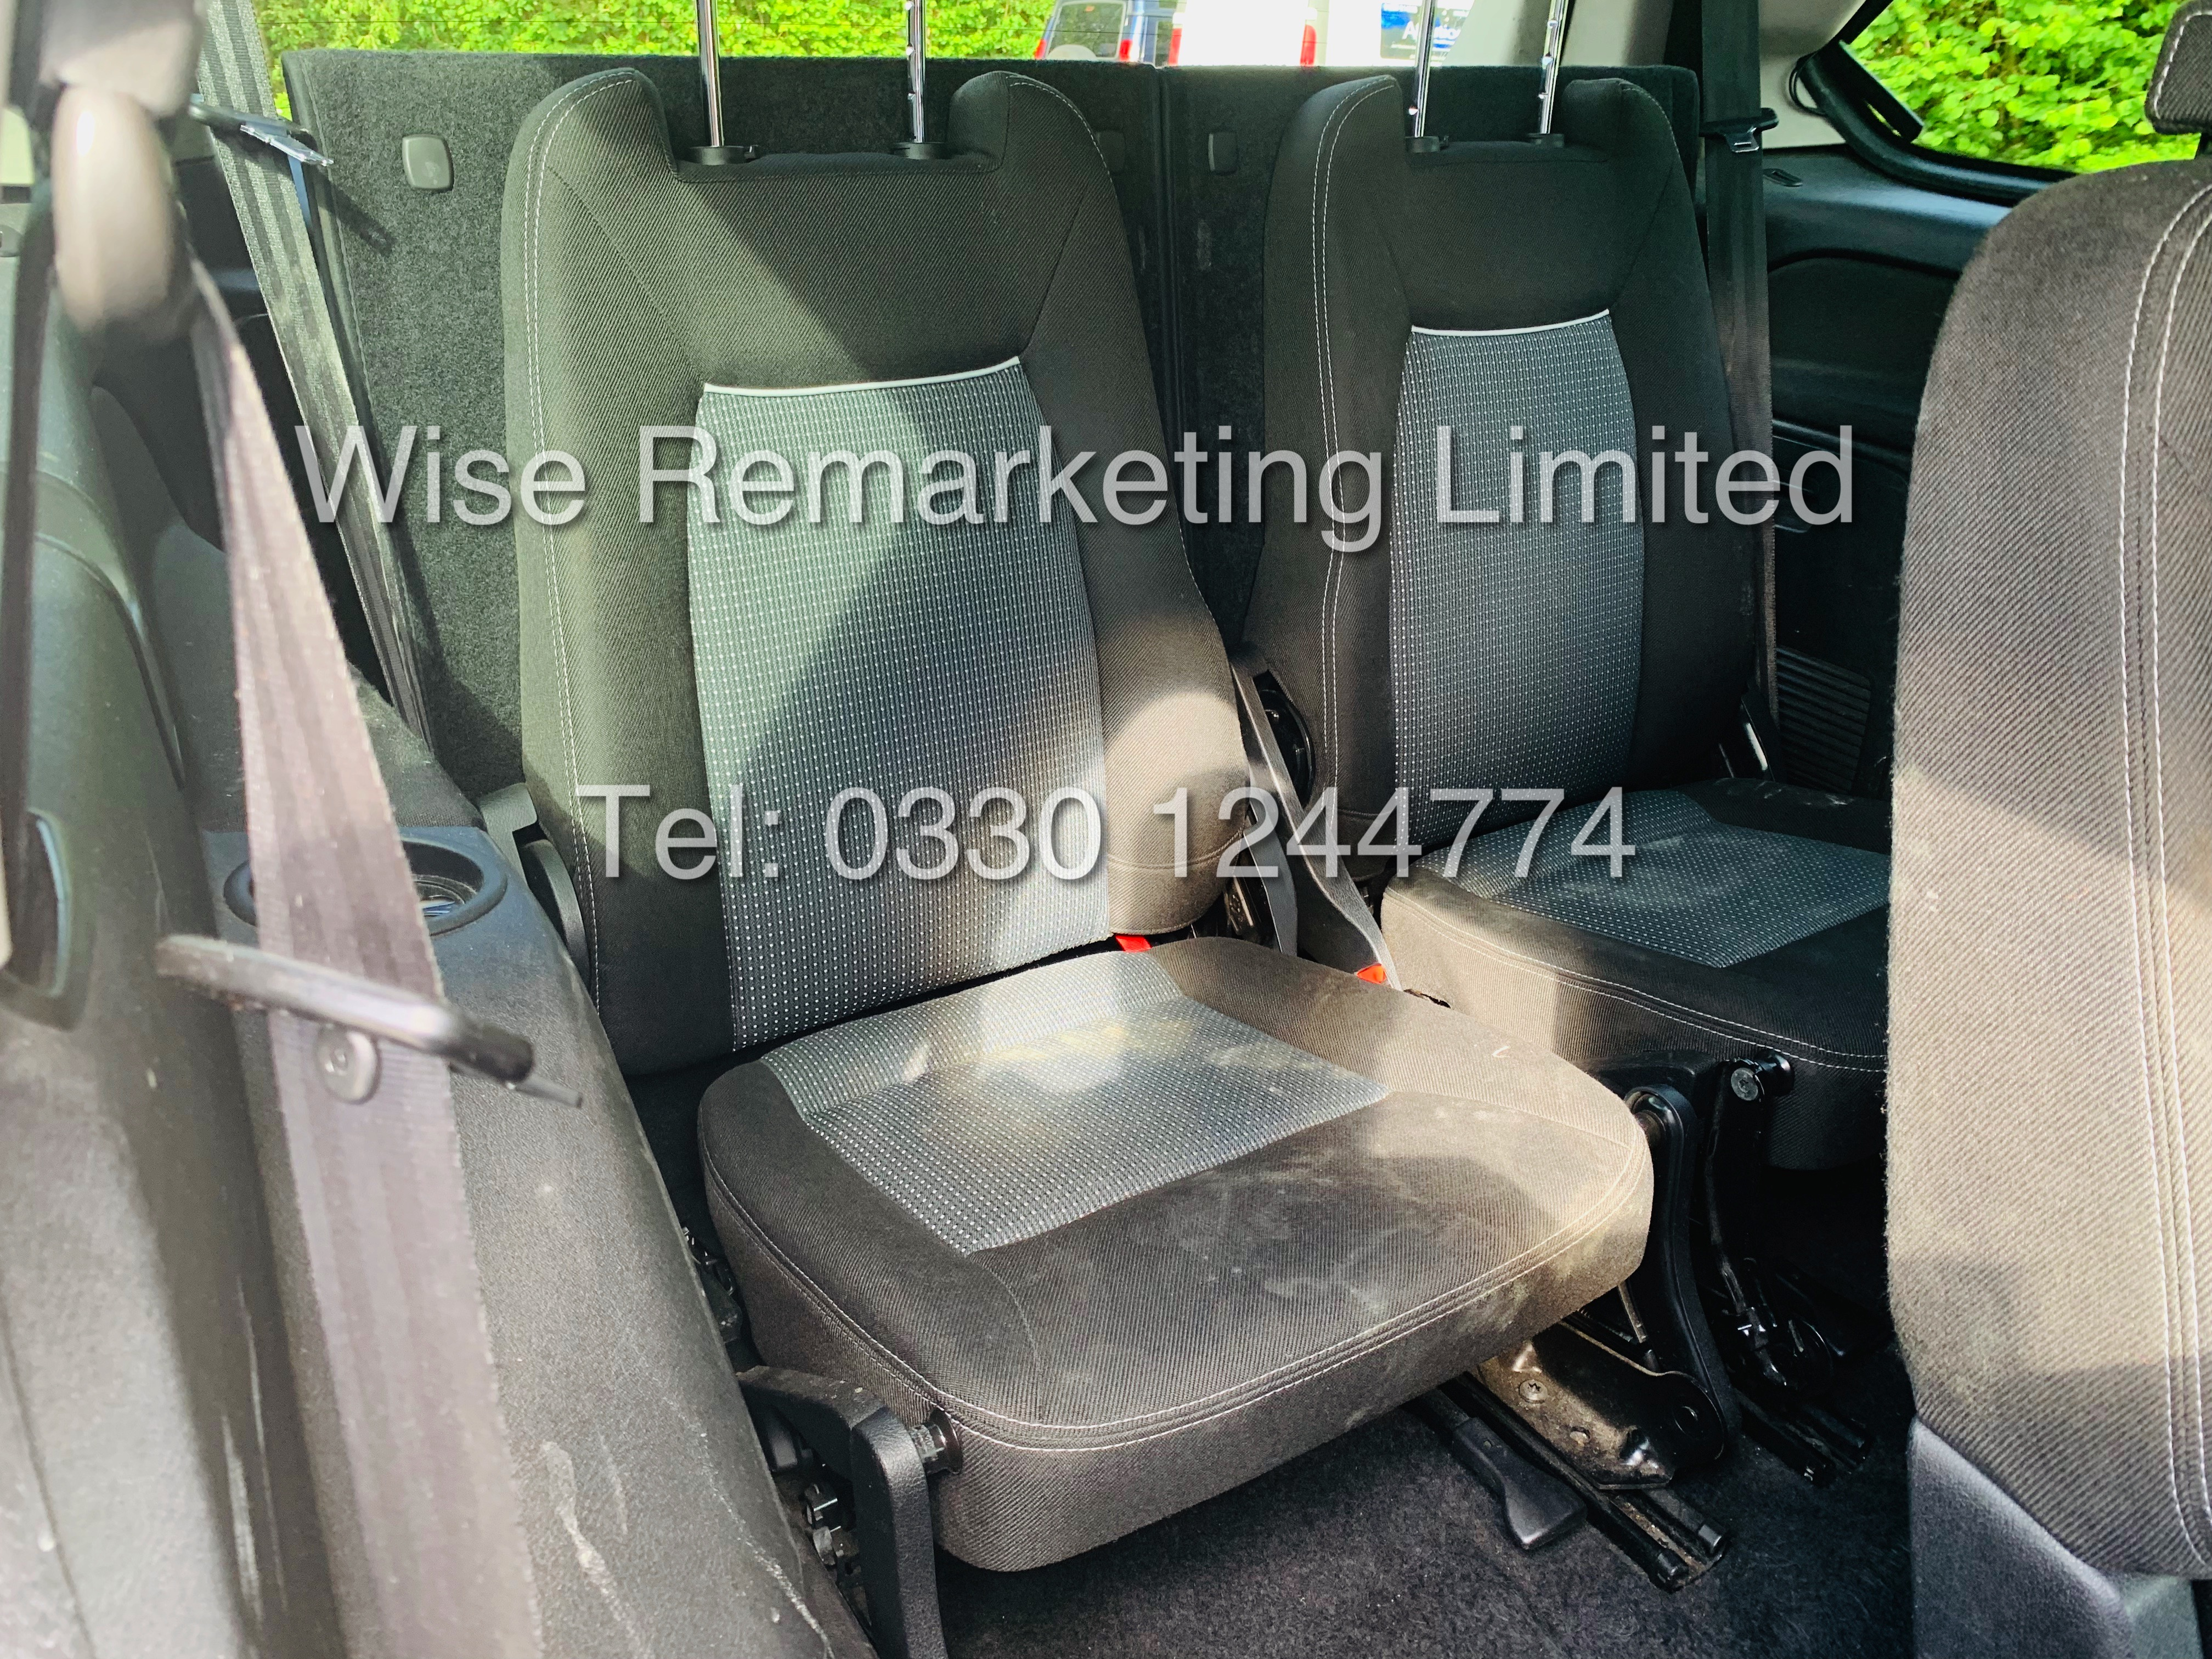 FORD GALAXY ZETEC 2.0L TDCI AUTO 7 SEATER MPV 63 REG *1 OWNER* - Image 11 of 20